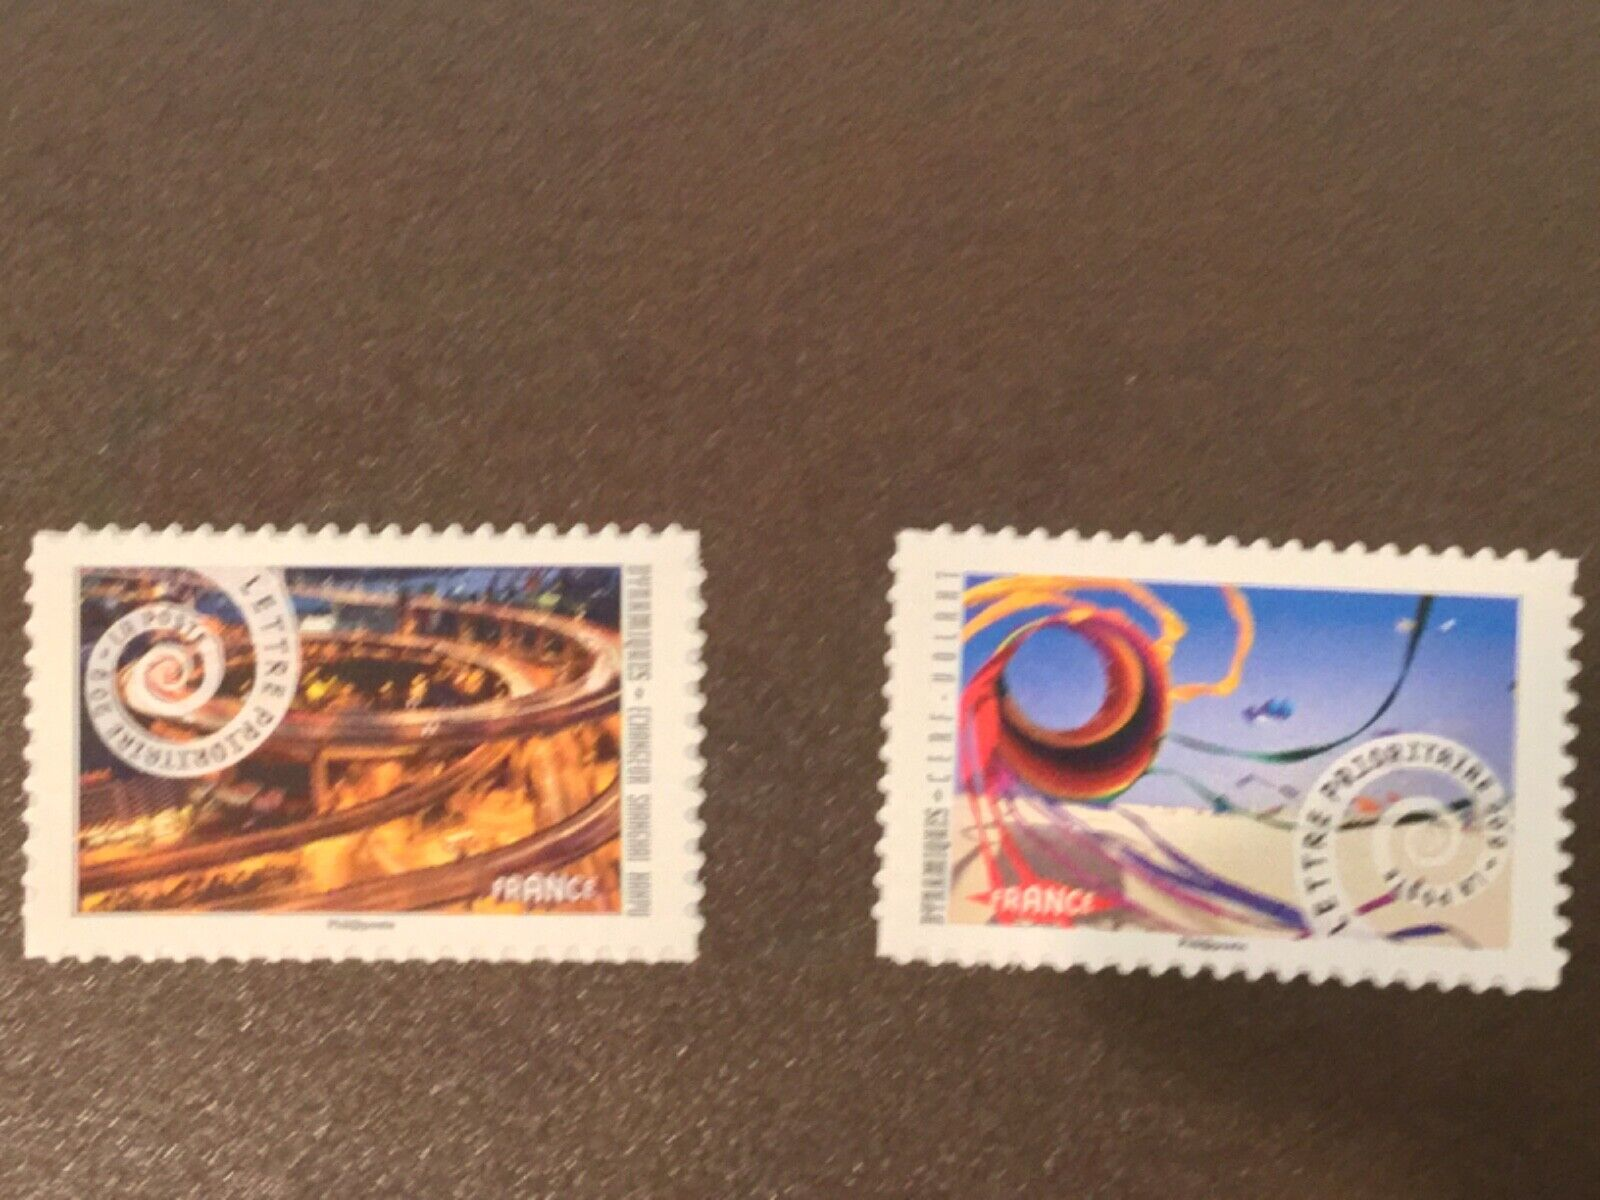 FRANCE DYNAMIQUES 2014 MNH Scott 4566-67 SELF ADHESIVE STAMPS NICE STAMPS - $1.99